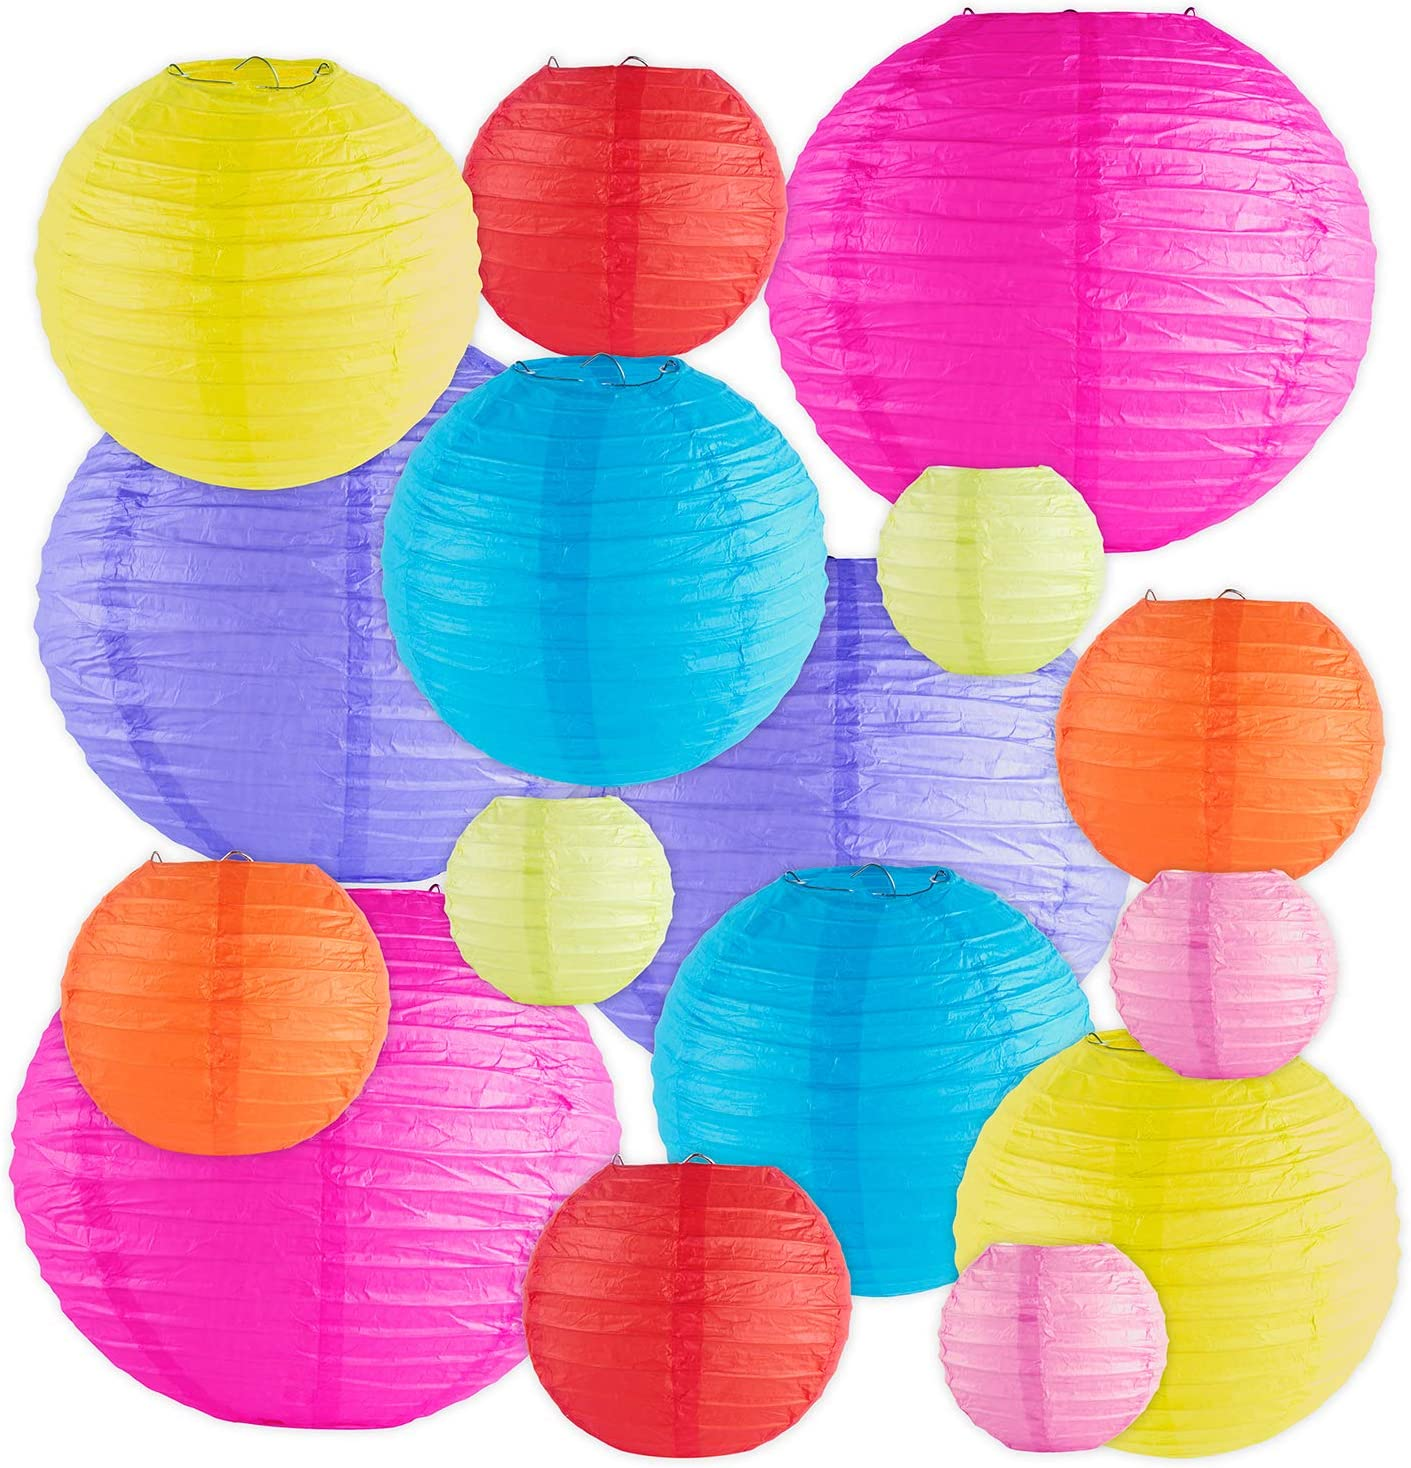 16 Pack Assorted Colorful Decorative Chinese/Japanese Floating Sky Paper Lanterns Metal Frame for Events, Party Decoration (Multiple Sizes)